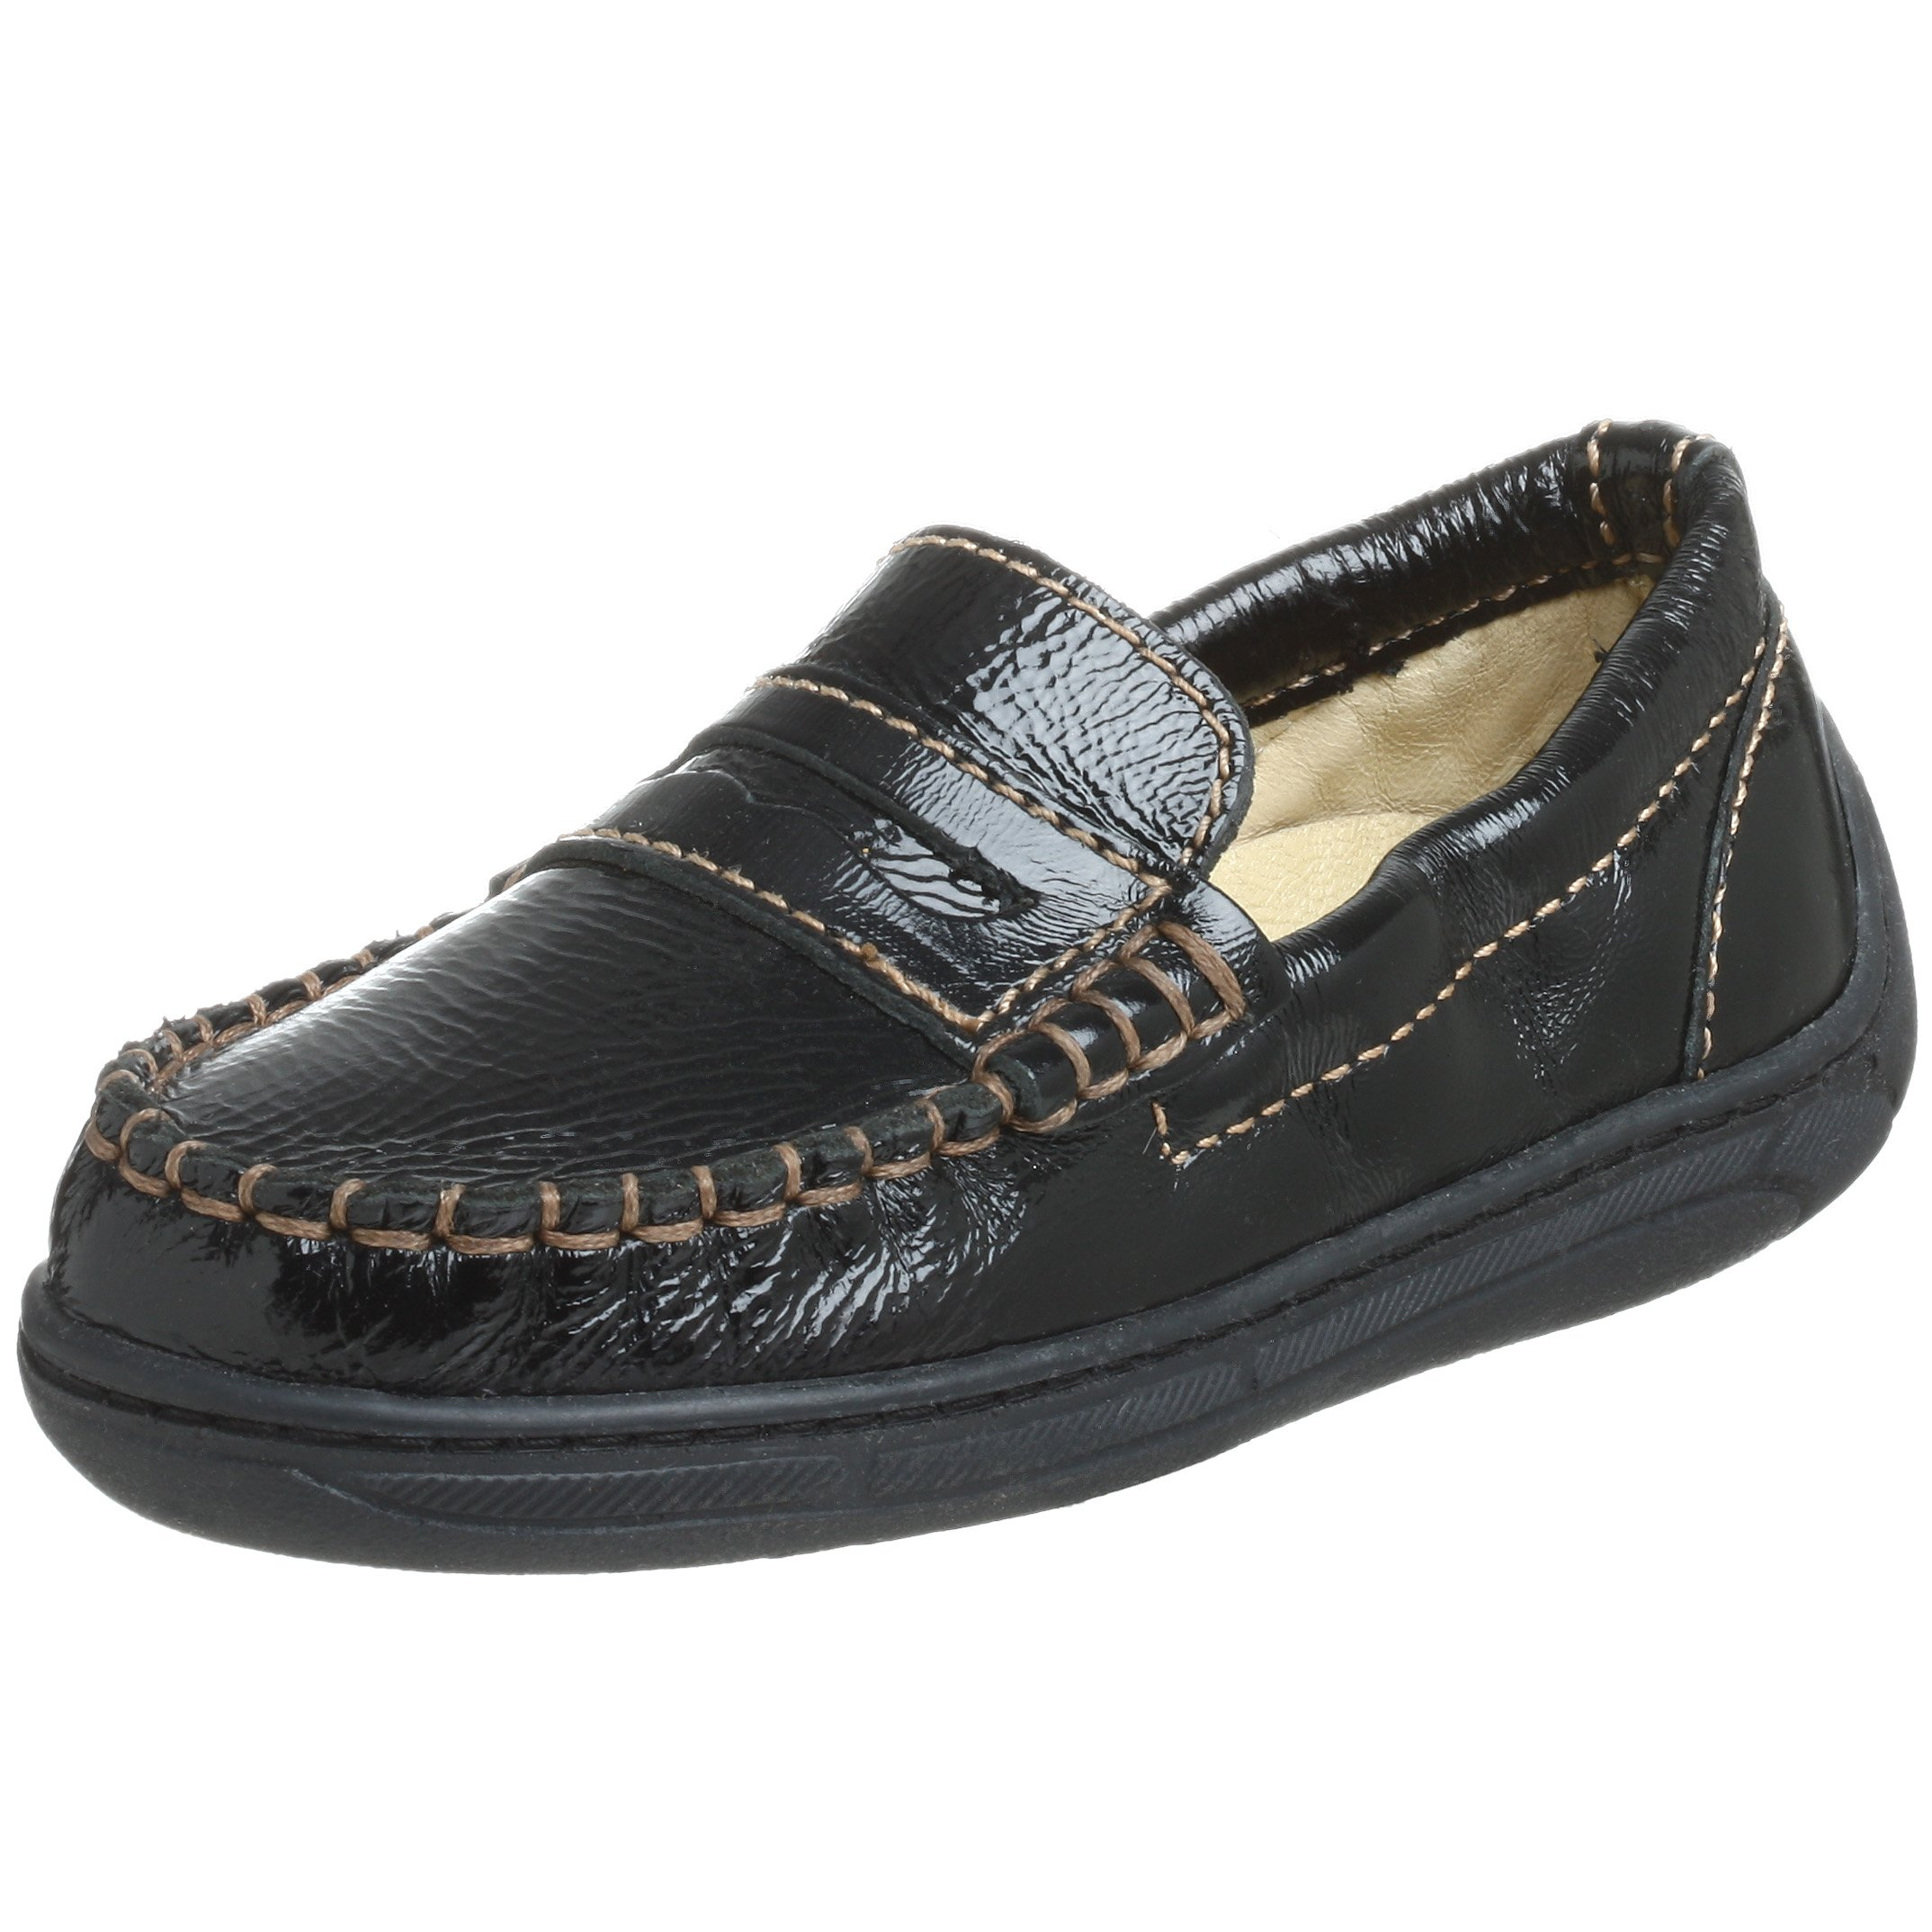 Primigi Toddler/Little Kid Choate Naplack Penny Loafer